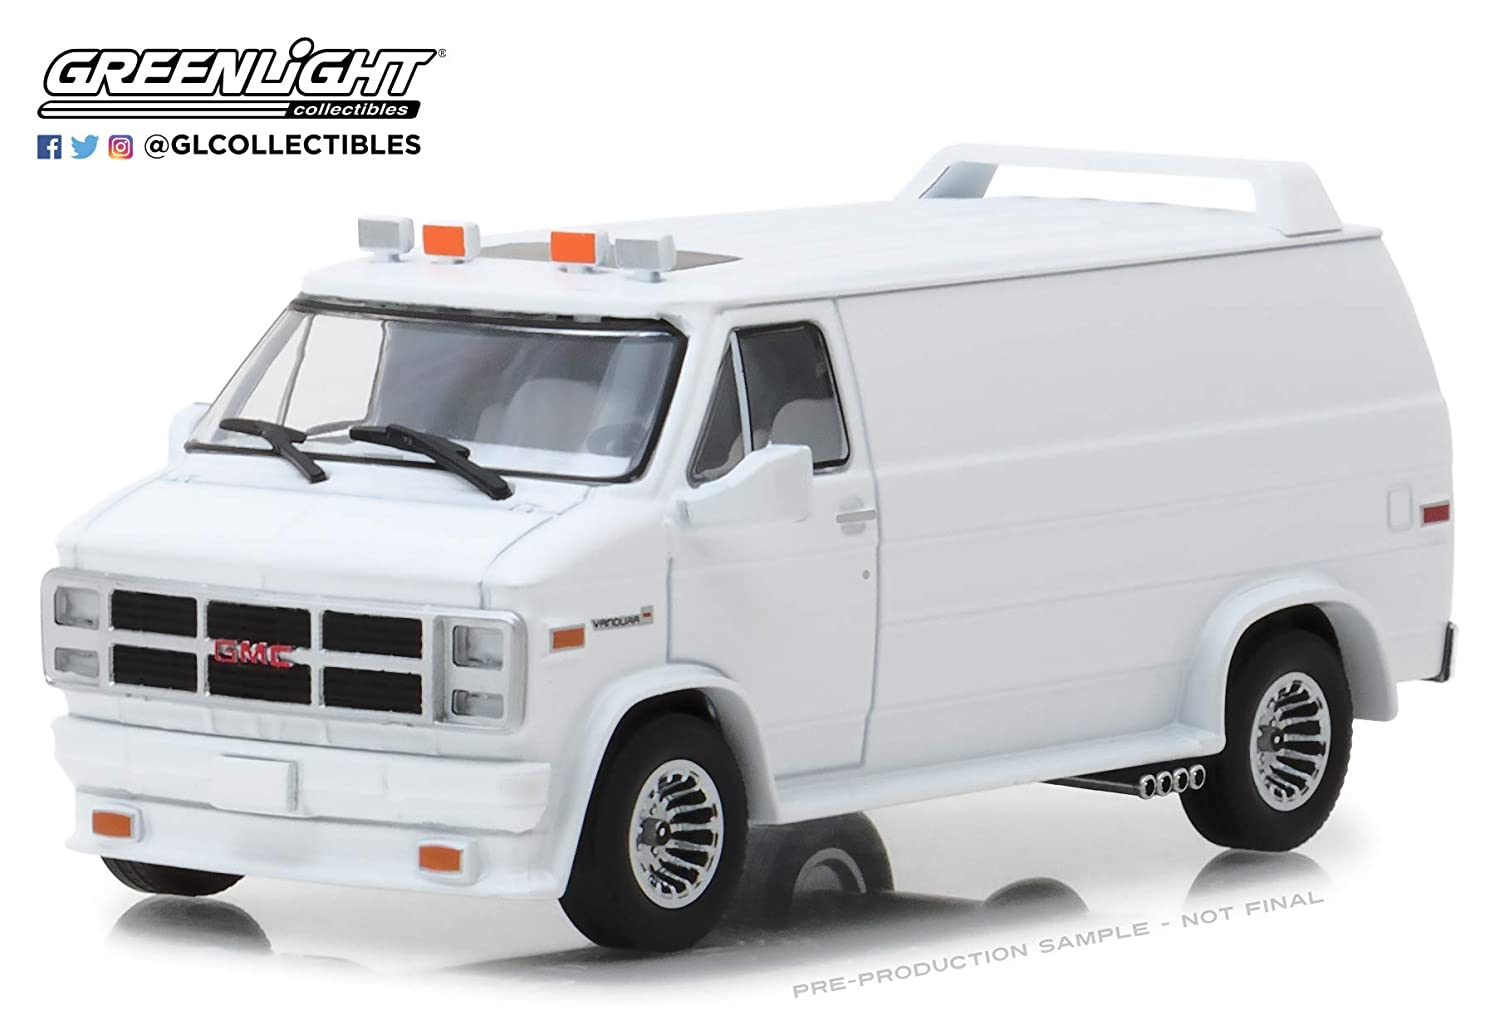 Greenlight 86326 Greenlight 1 43 1983 GMC Vandura Ready to Customize White